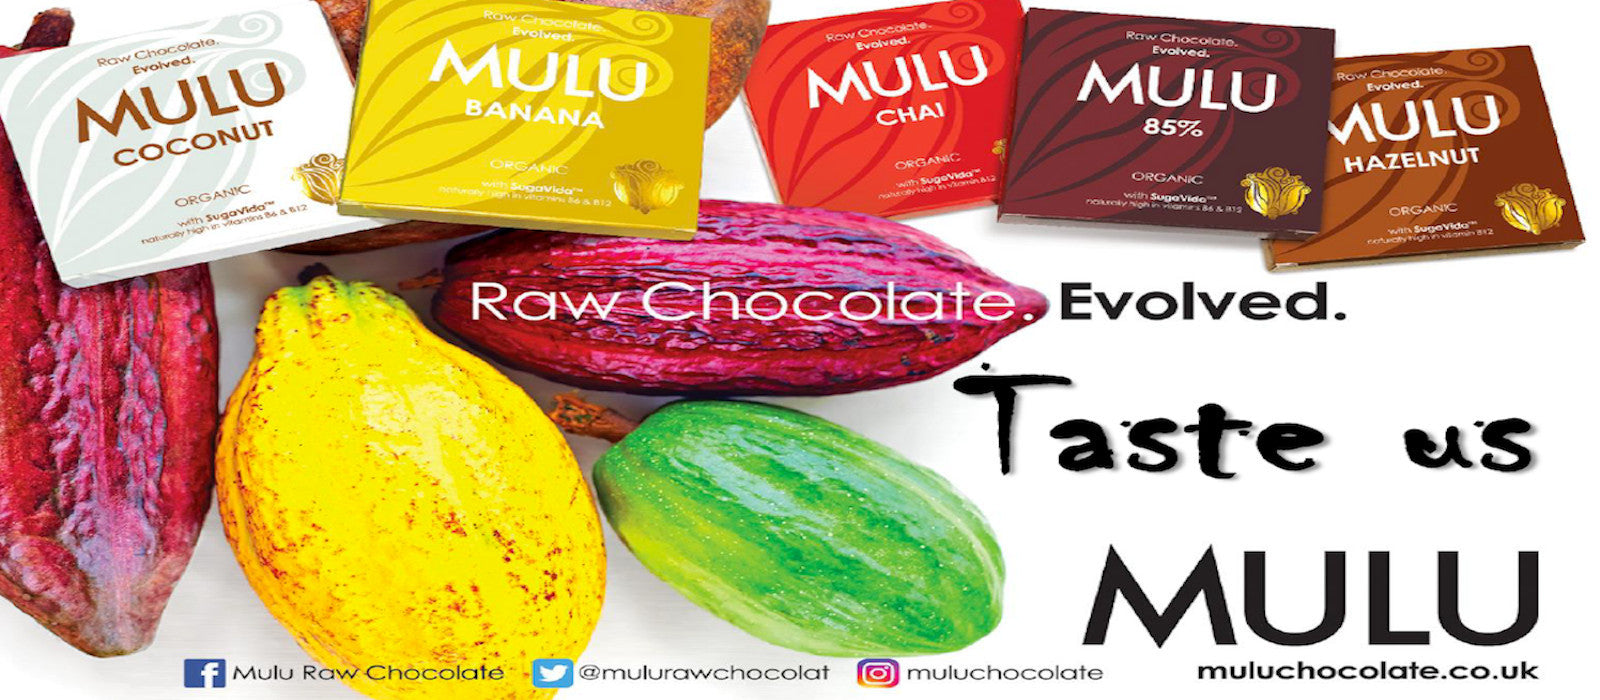 MULU Organic Vegan Raw Chocolate